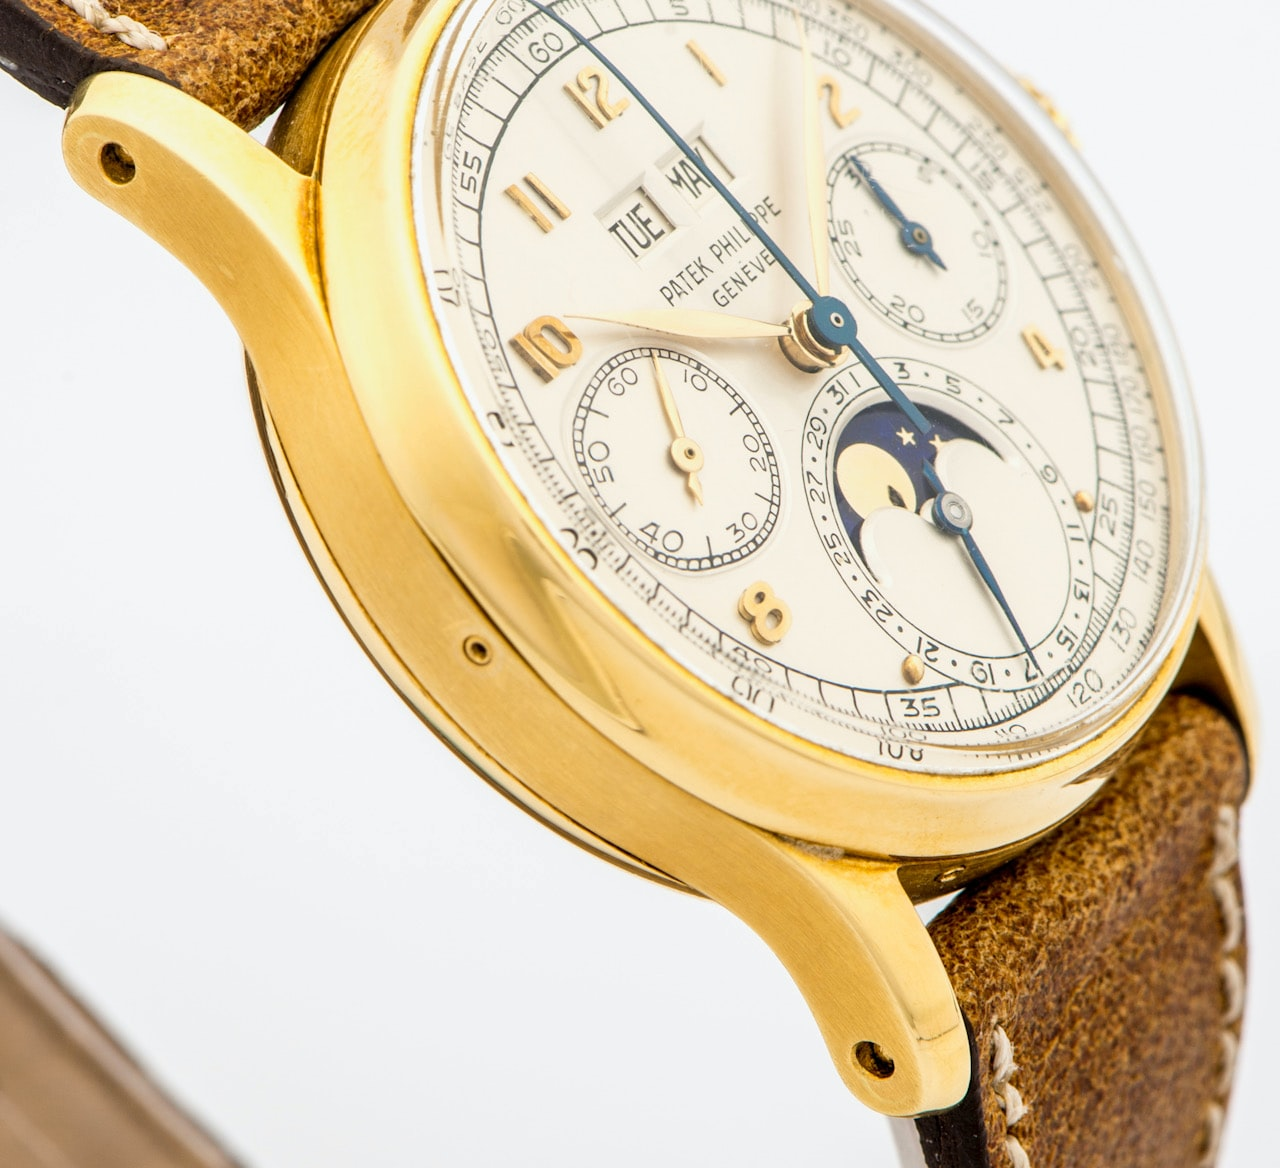 Watch Collector PSA: A Very Rare Patek Philippe 1518 In Yellow Gold Has Been Stolen (Please Share) Watch Collector PSA: A Very Rare Patek Philippe 1518 In Yellow Gold Has Been Stolen (Please Share) IMG 4770